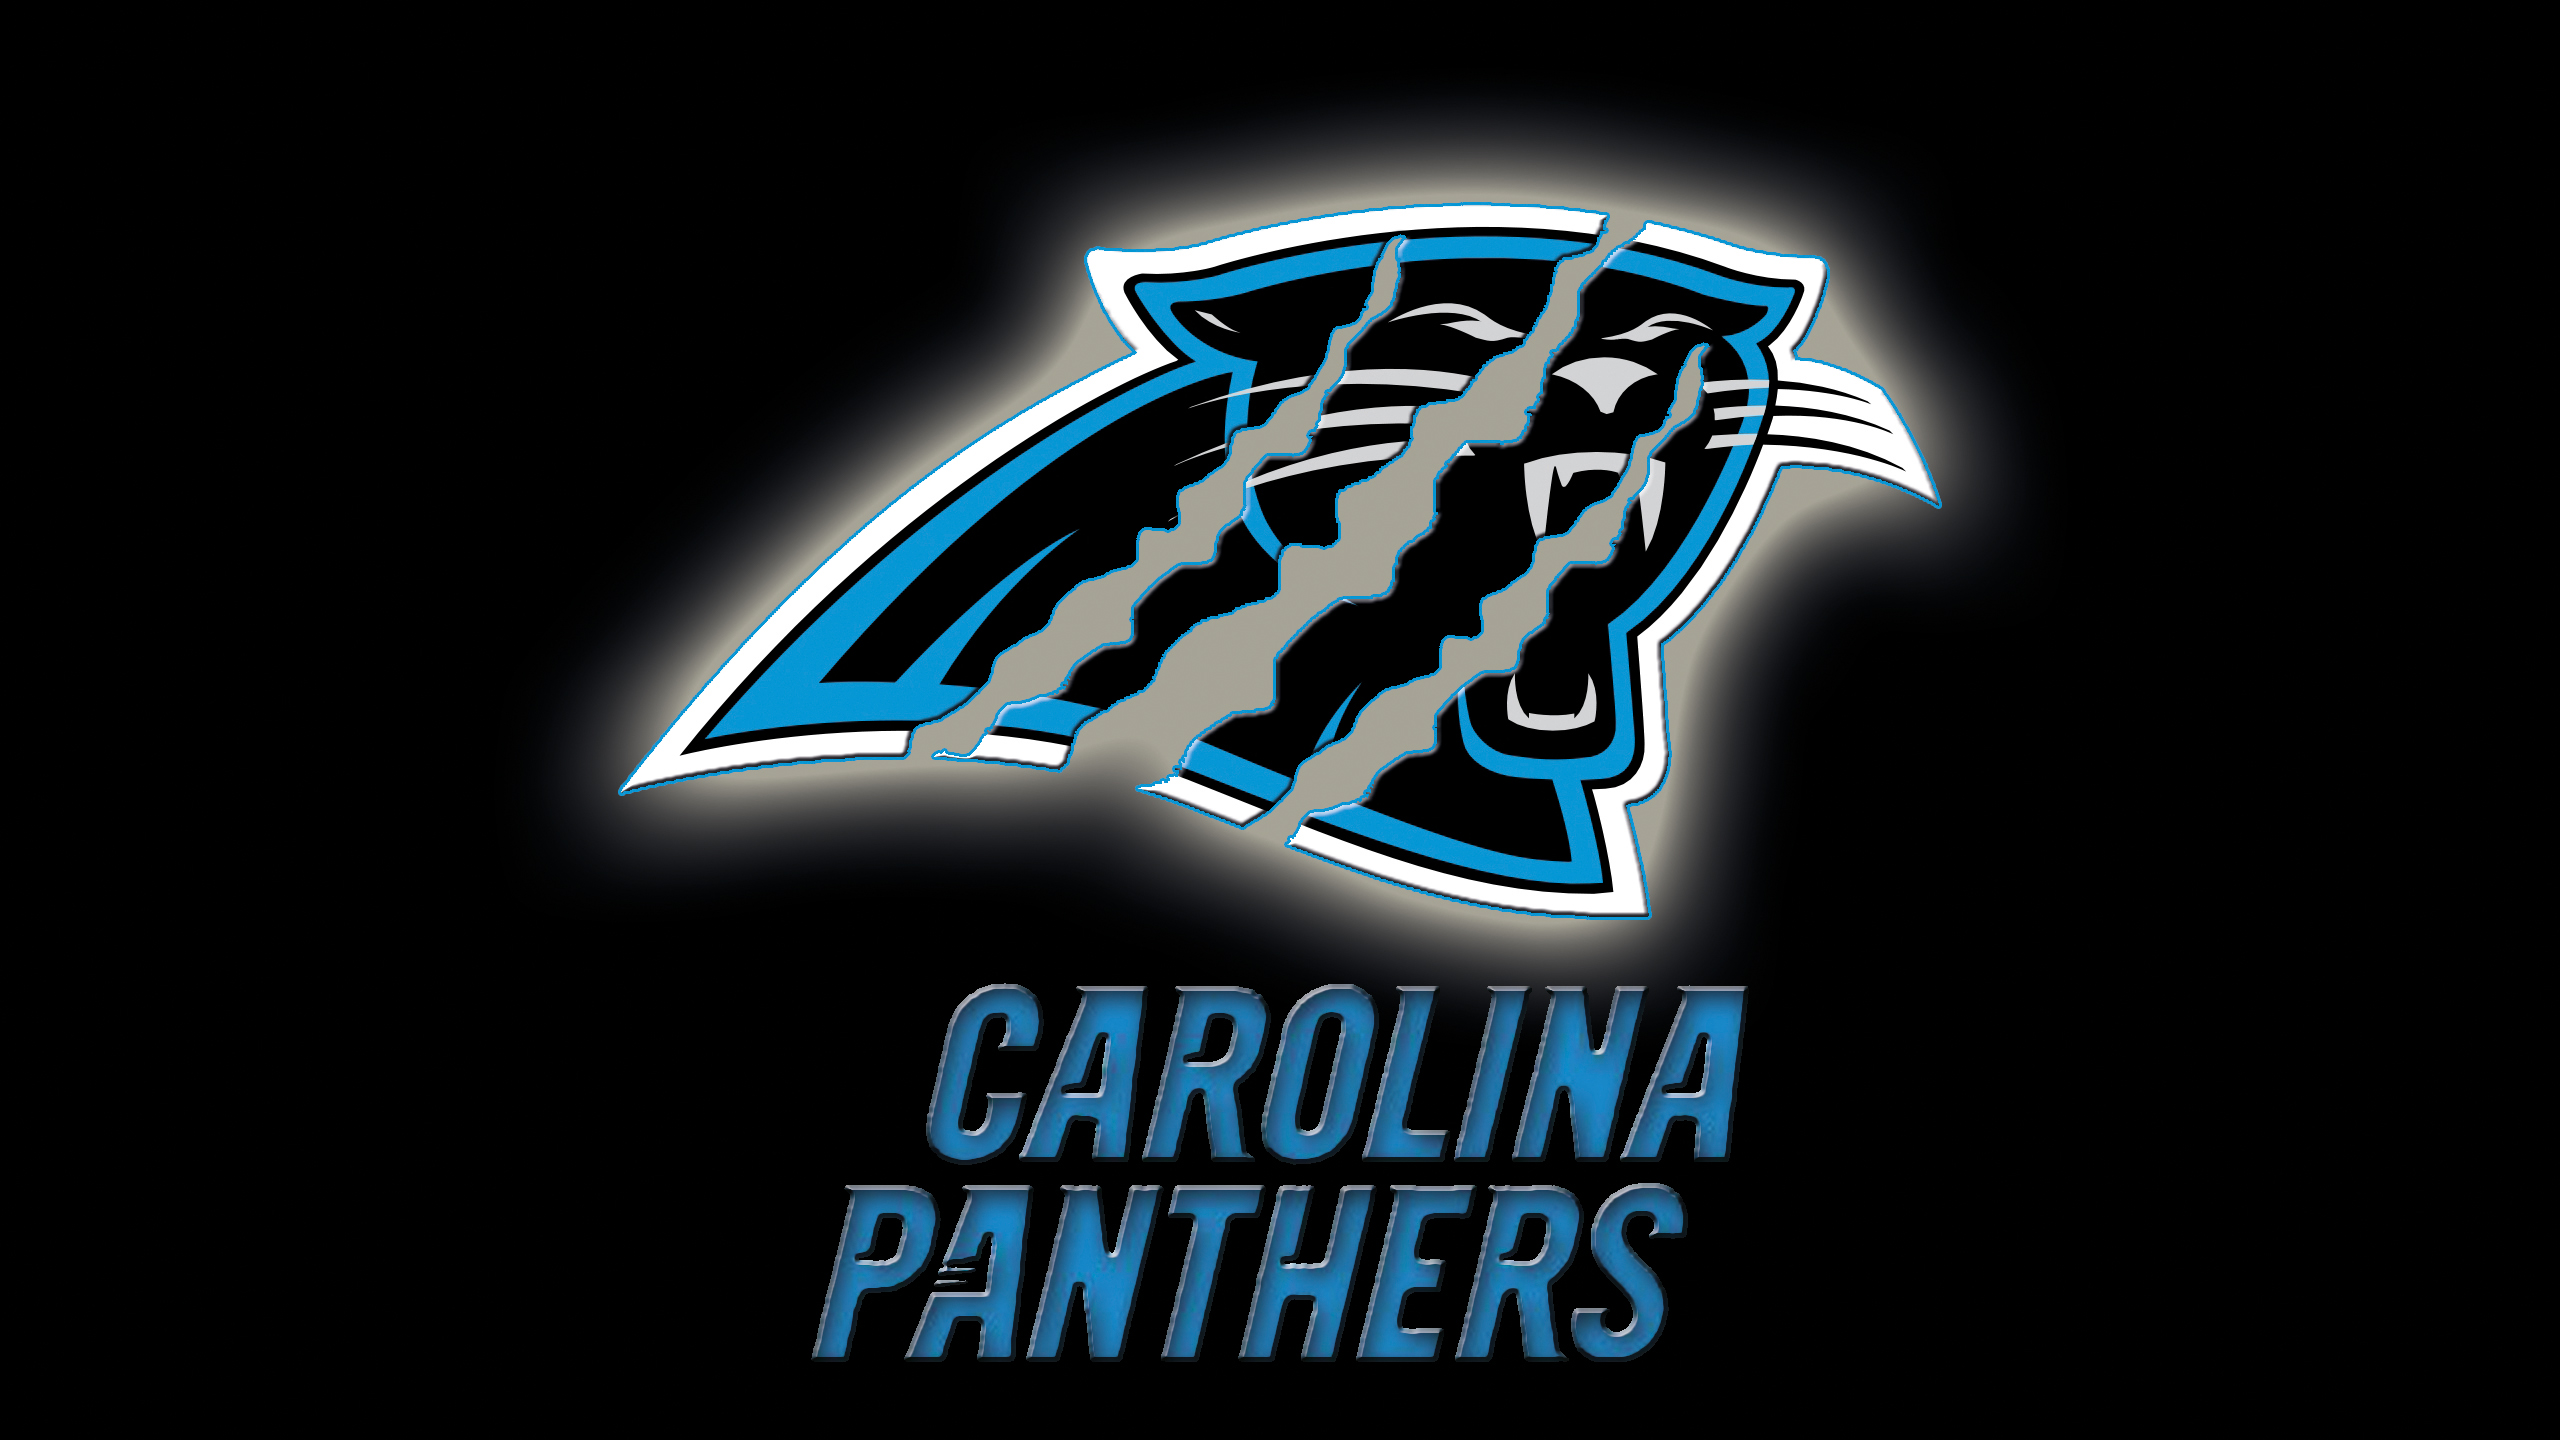 Carolina Panthers By Beaware8 On Deviantart